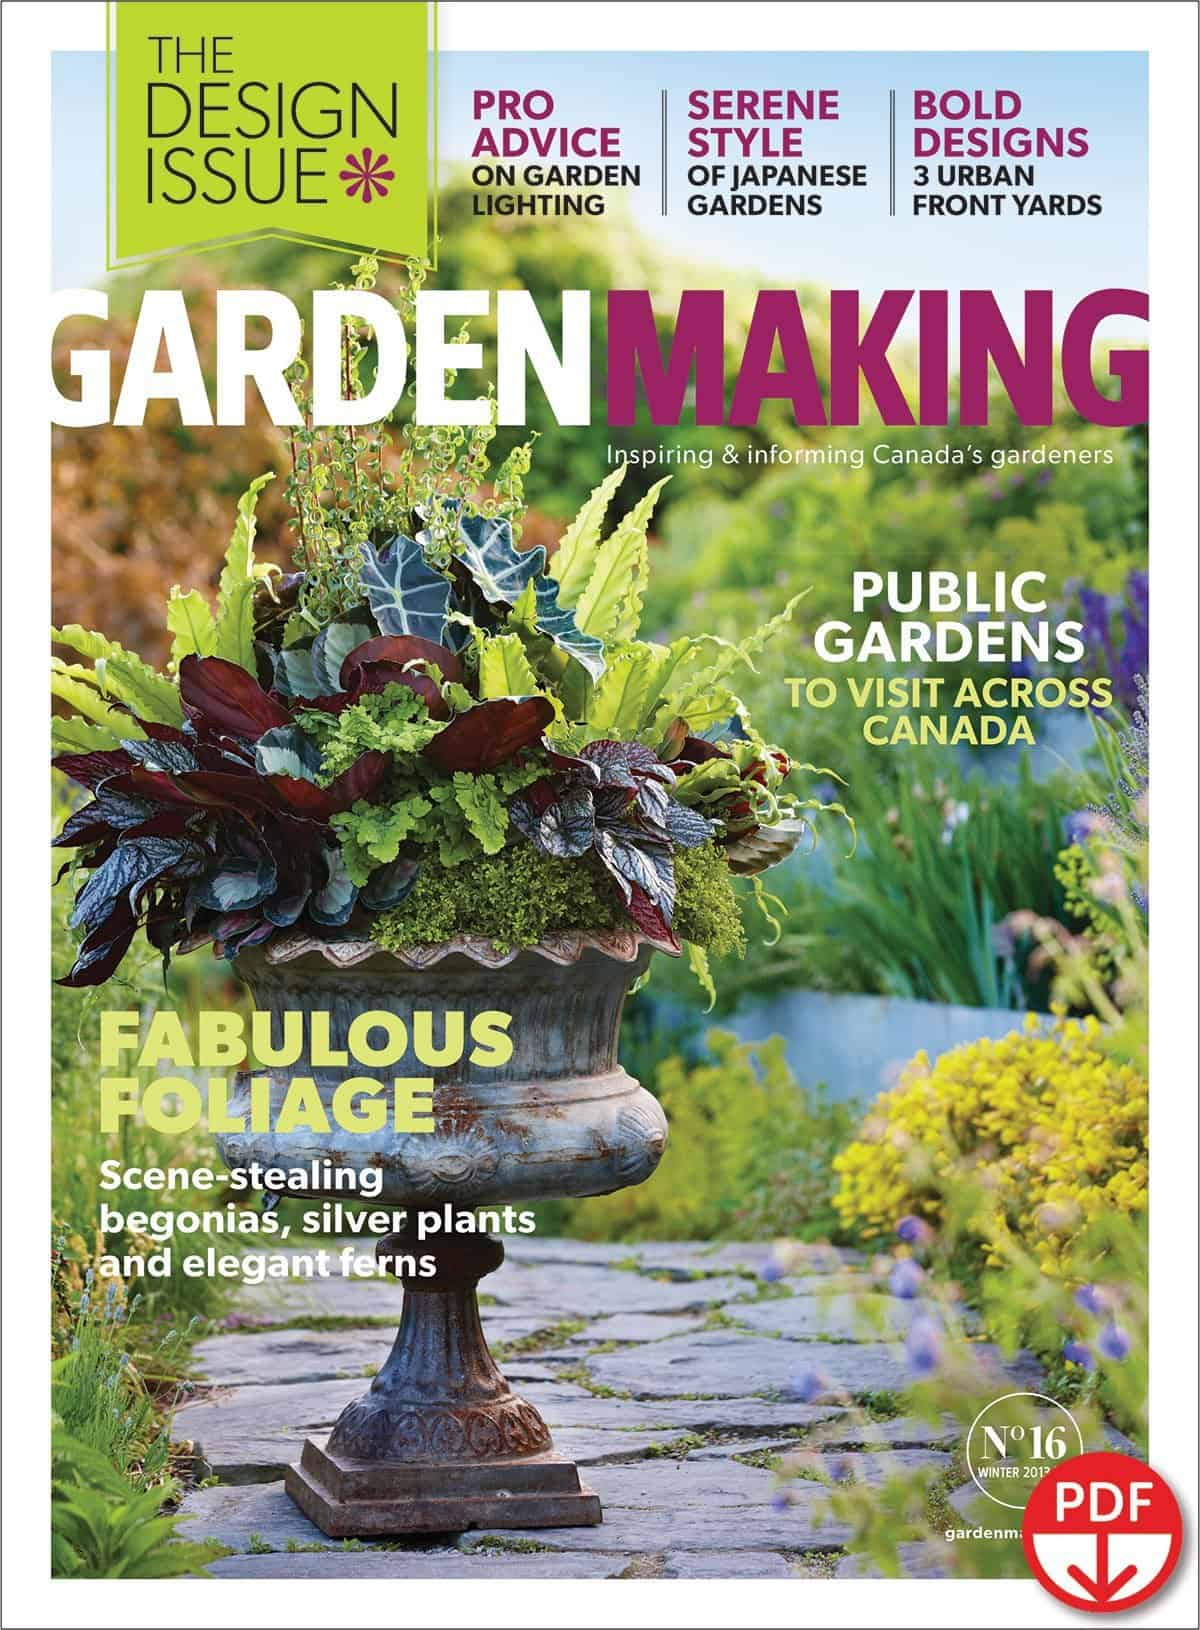 Foliage is the focus of Garden Making's 4th annual Garden Design Issue, No. 16.